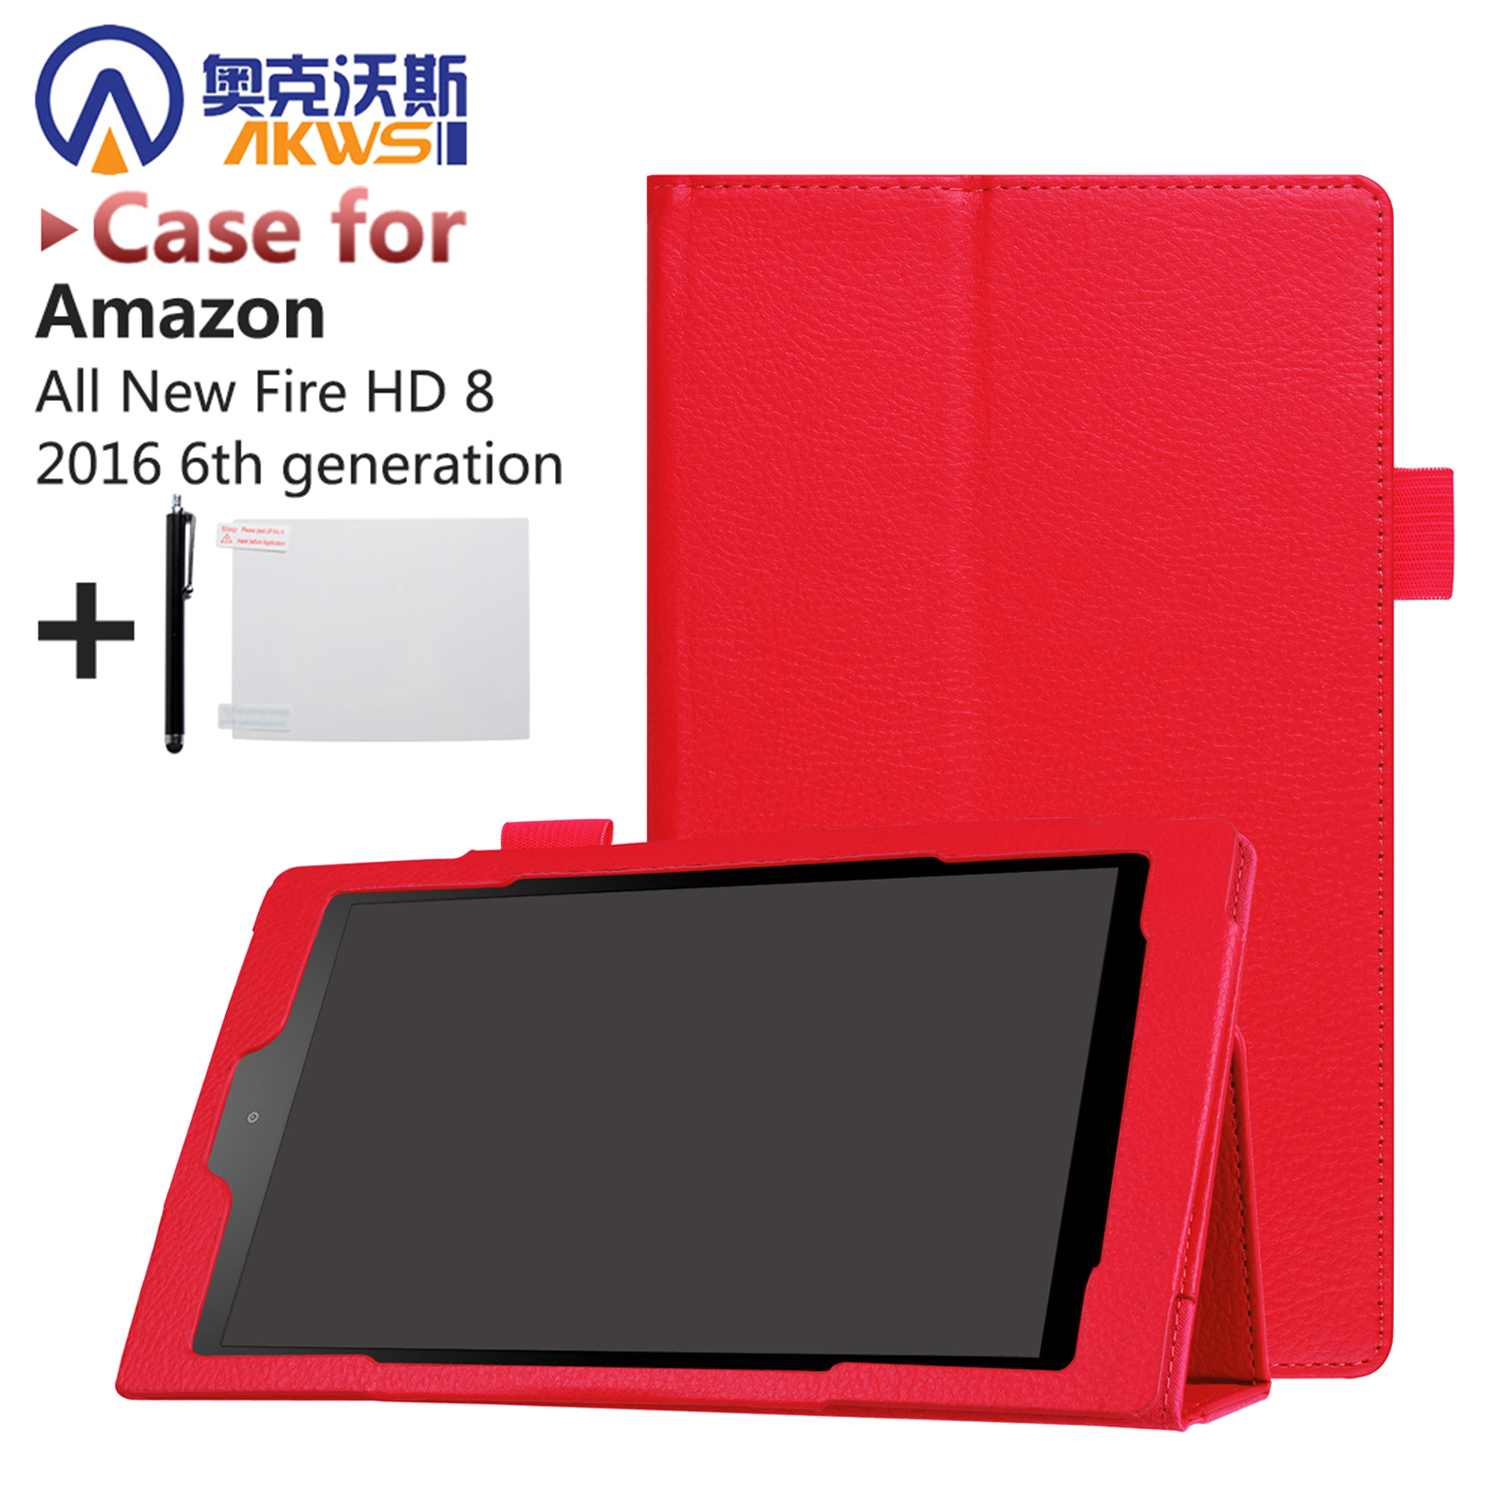 Für <font><b>Amazon</b></font> kindle Feuer <font><b>HD</b></font> <font><b>8</b></font> ''<font><b>tablet</b></font> case slim abdeckung fällen PU leder <font><b>tablet</b></font> fall image